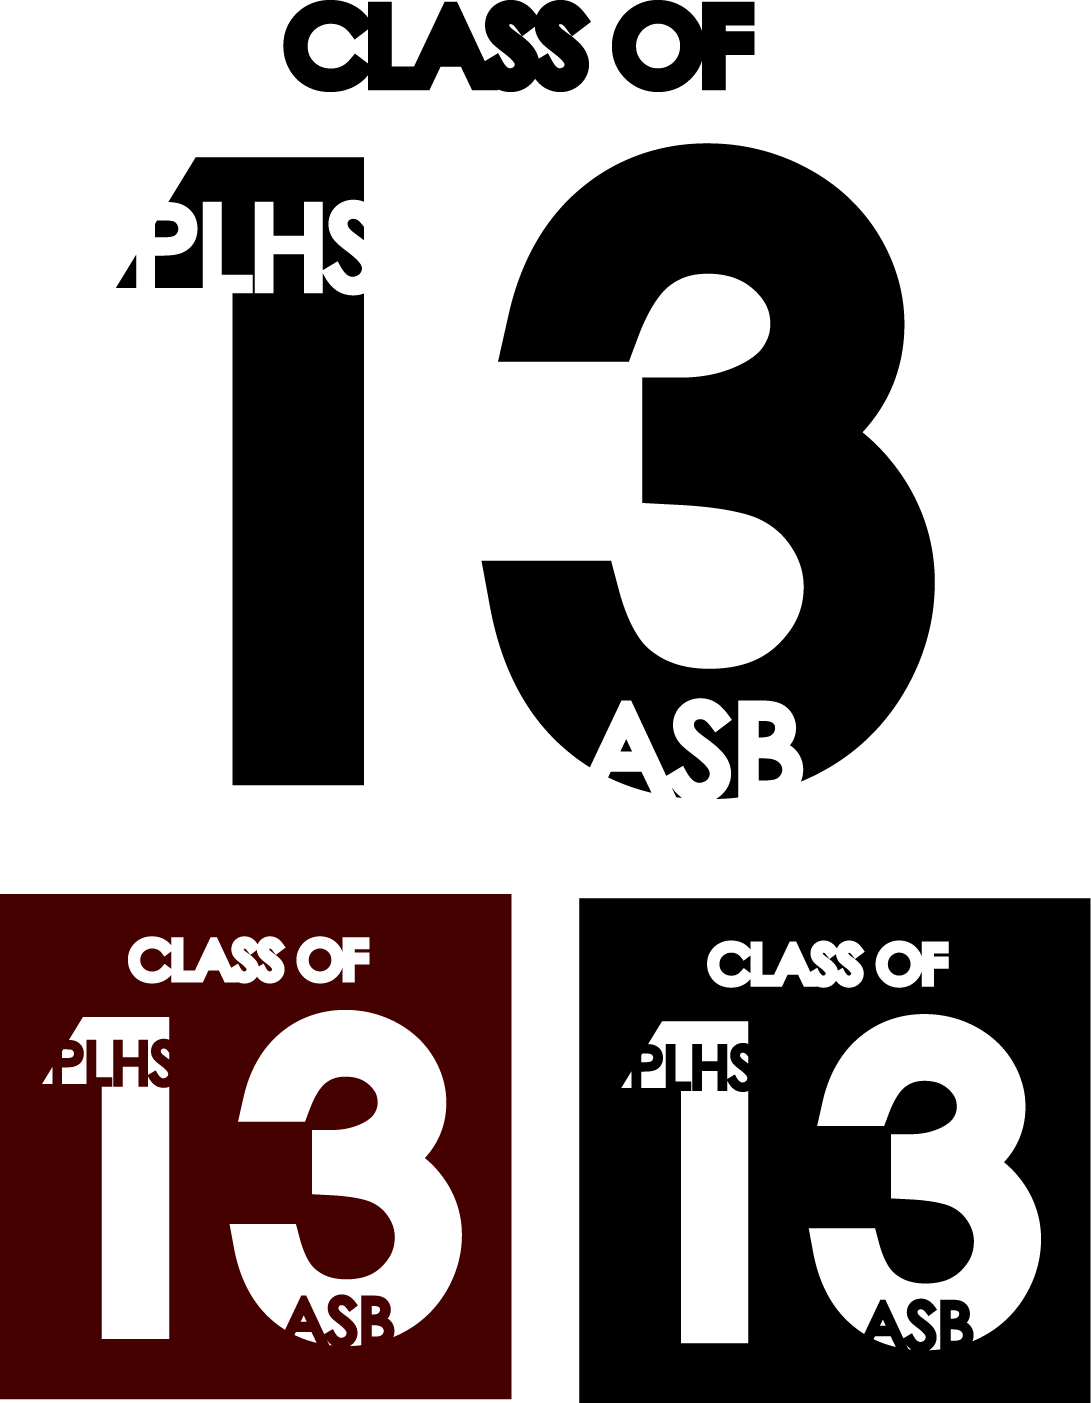 Shirt design ideas for school - Asb Shirt Ideas For The School Year 2012 2013 Made With Adobe Illustrator Both Have Three Colour Combinations